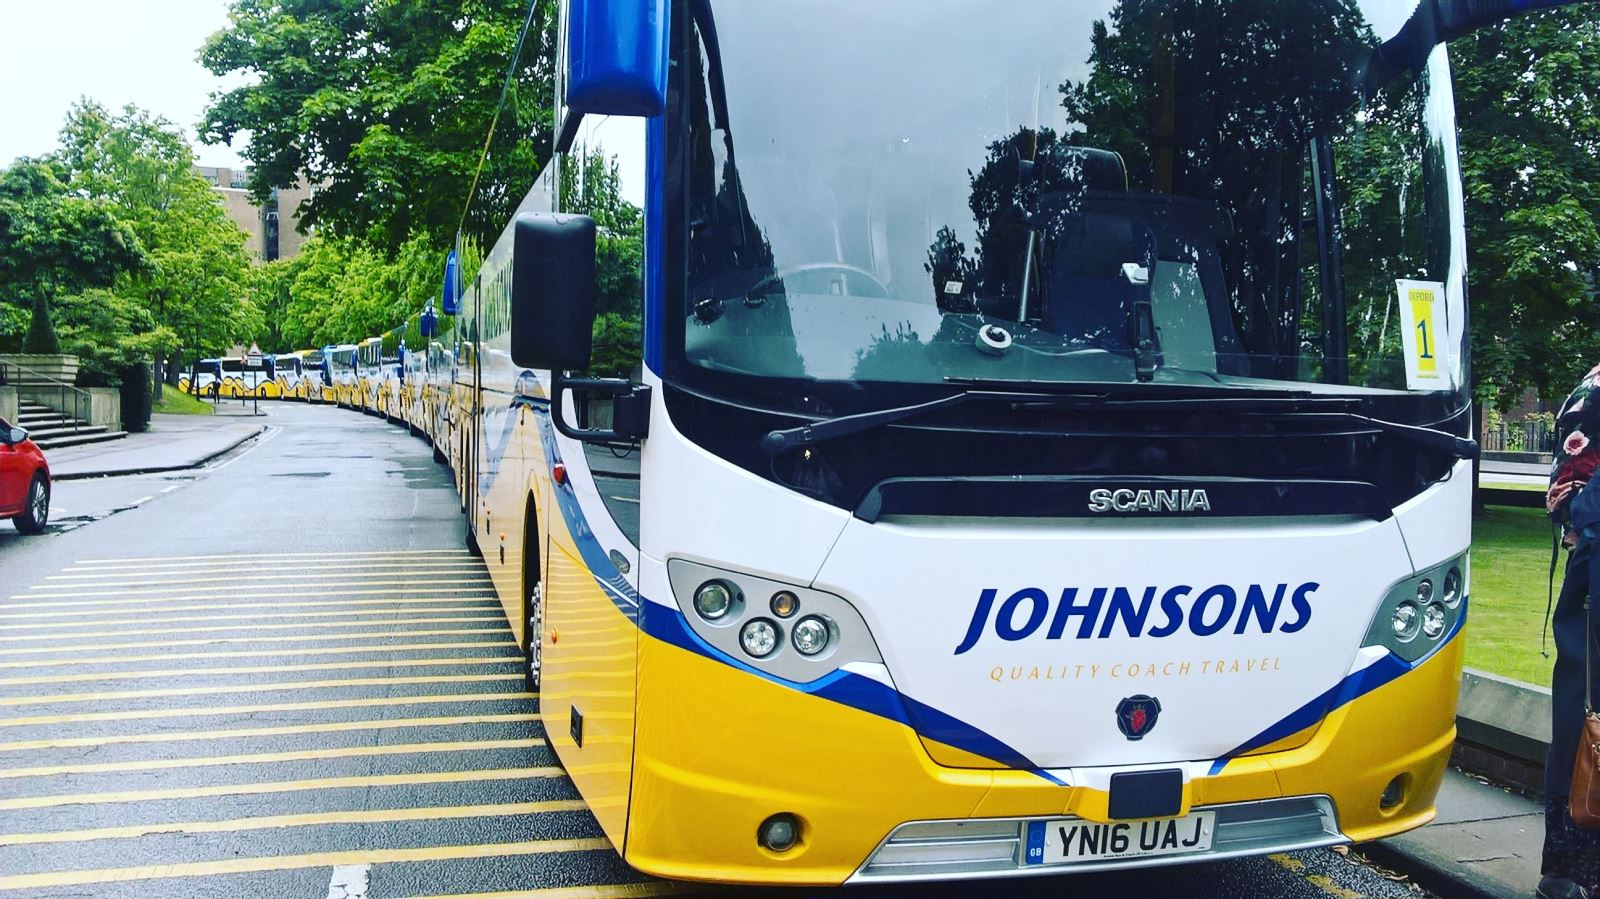 Johnsons Coaches at Birmingham University